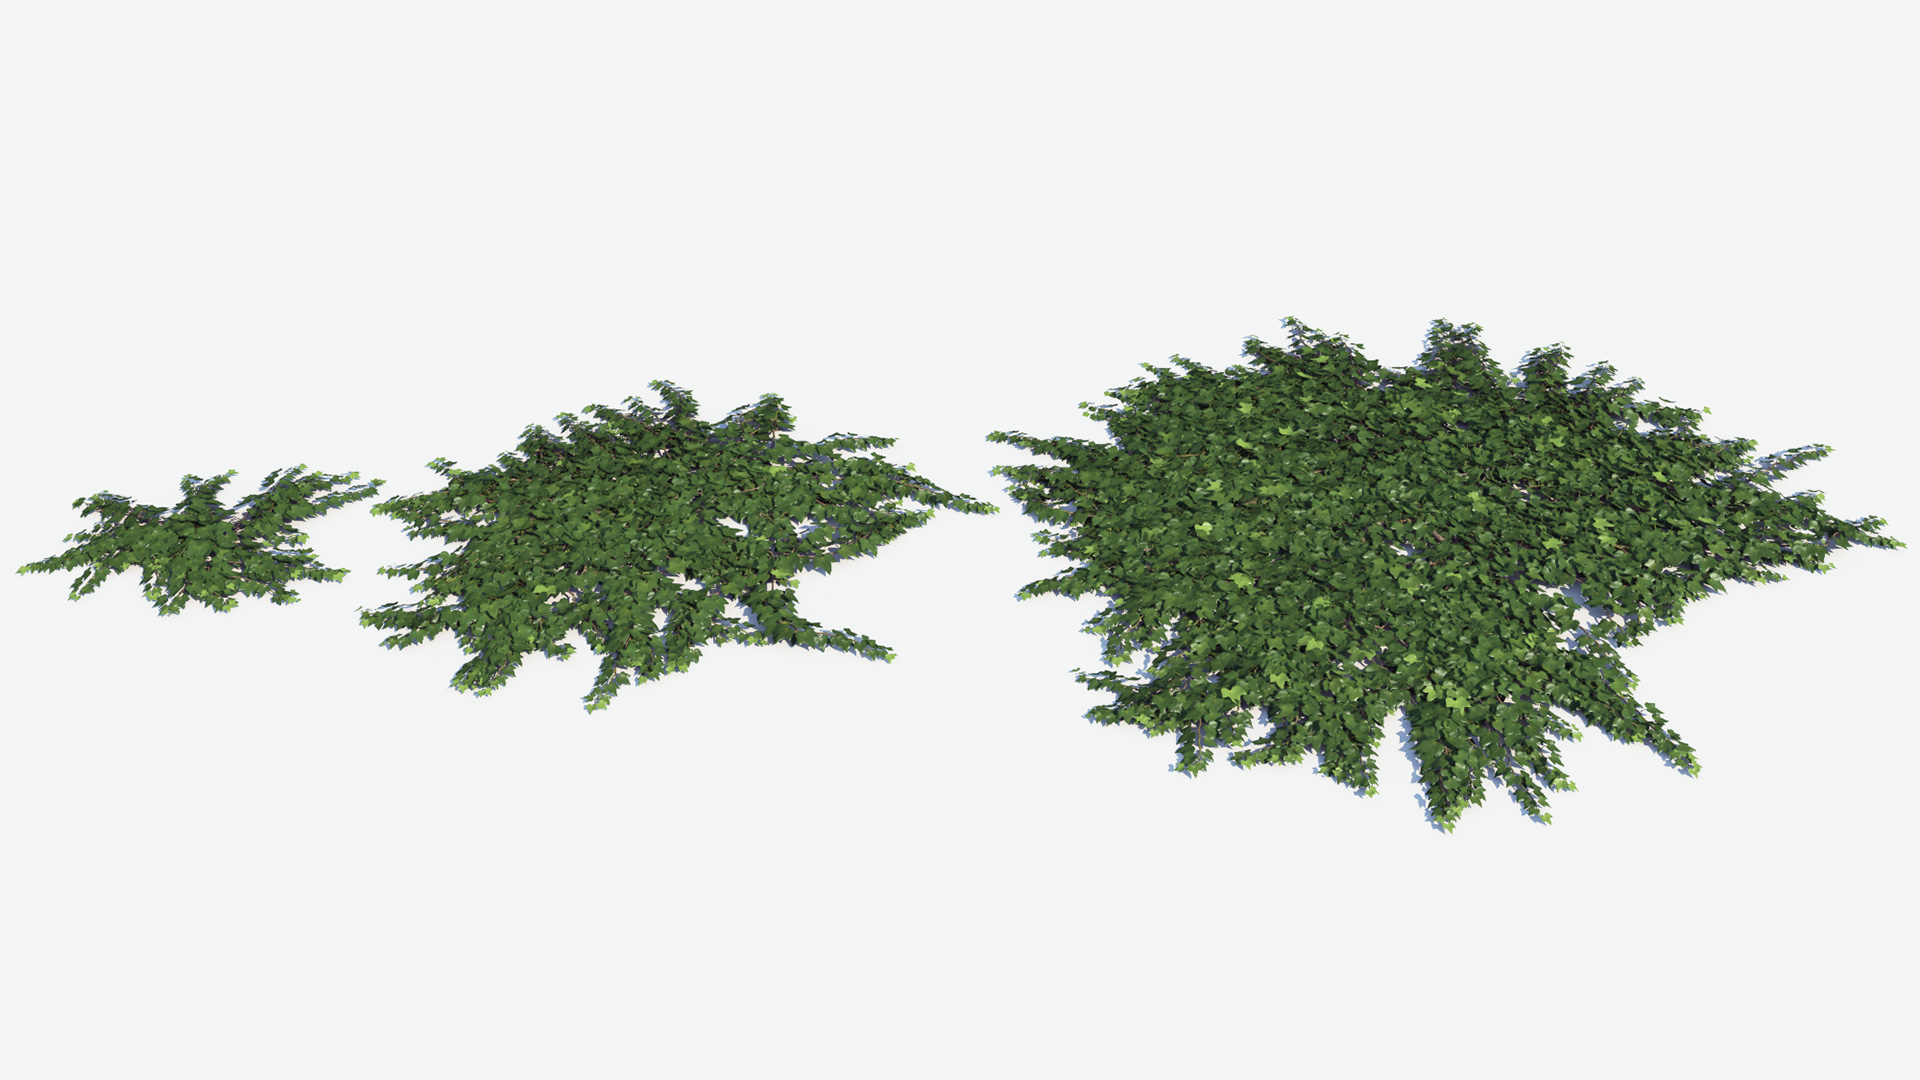 3D model of the Green ivy ground cover Hedera helix ground cover green maturity variations